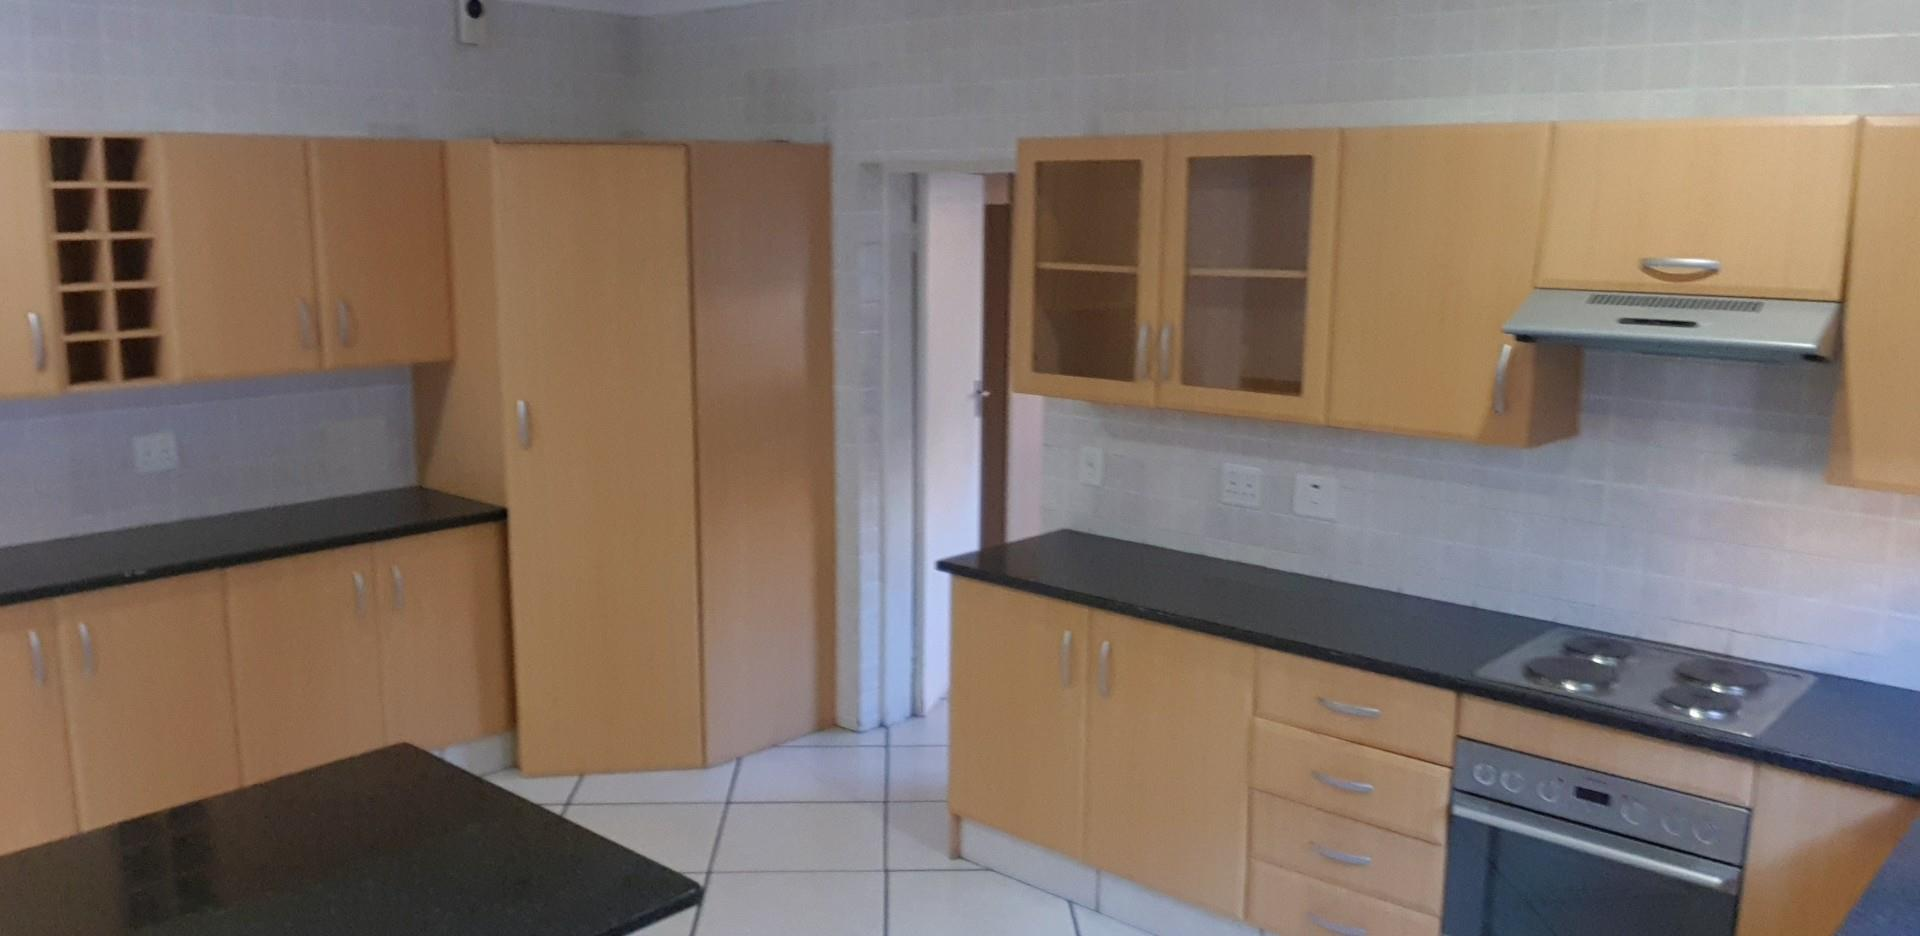 3 Bedroom House For Sale in New Market Park